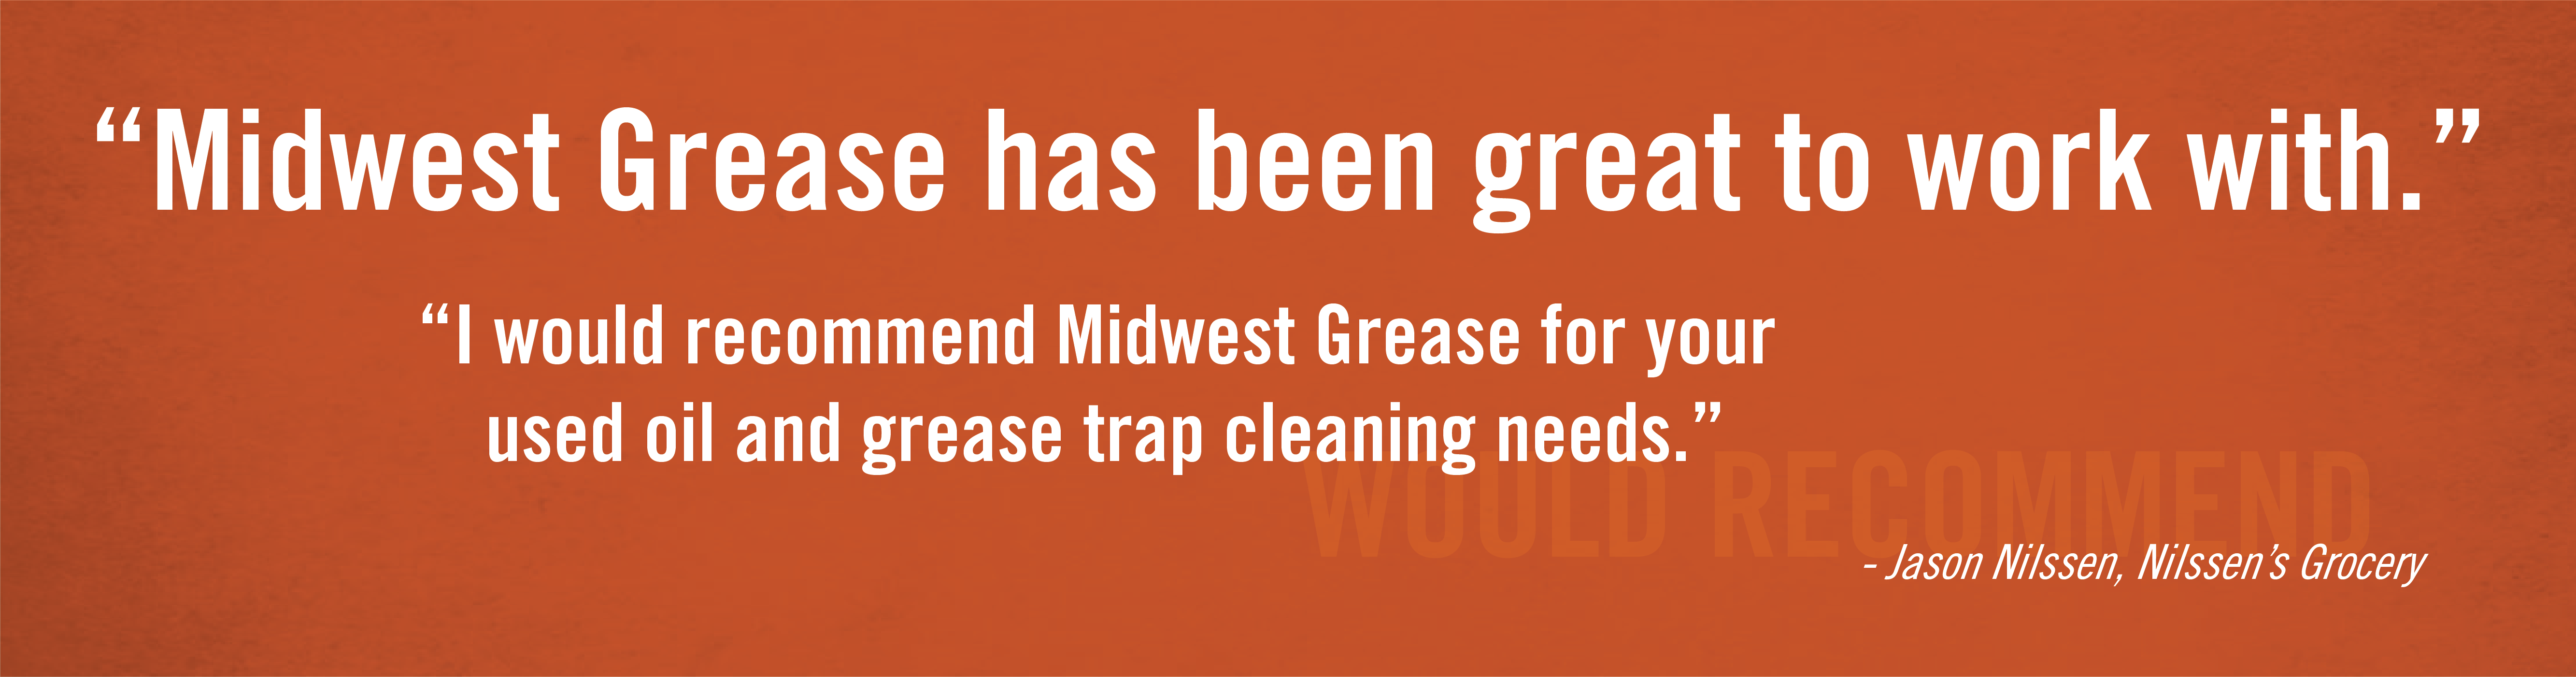 Midwest Grease has been great to work with. I would recommend Midwest Grease for our used oil and grease trap cleaning needs. - Jason Nilssen, Nilssen's Grocery